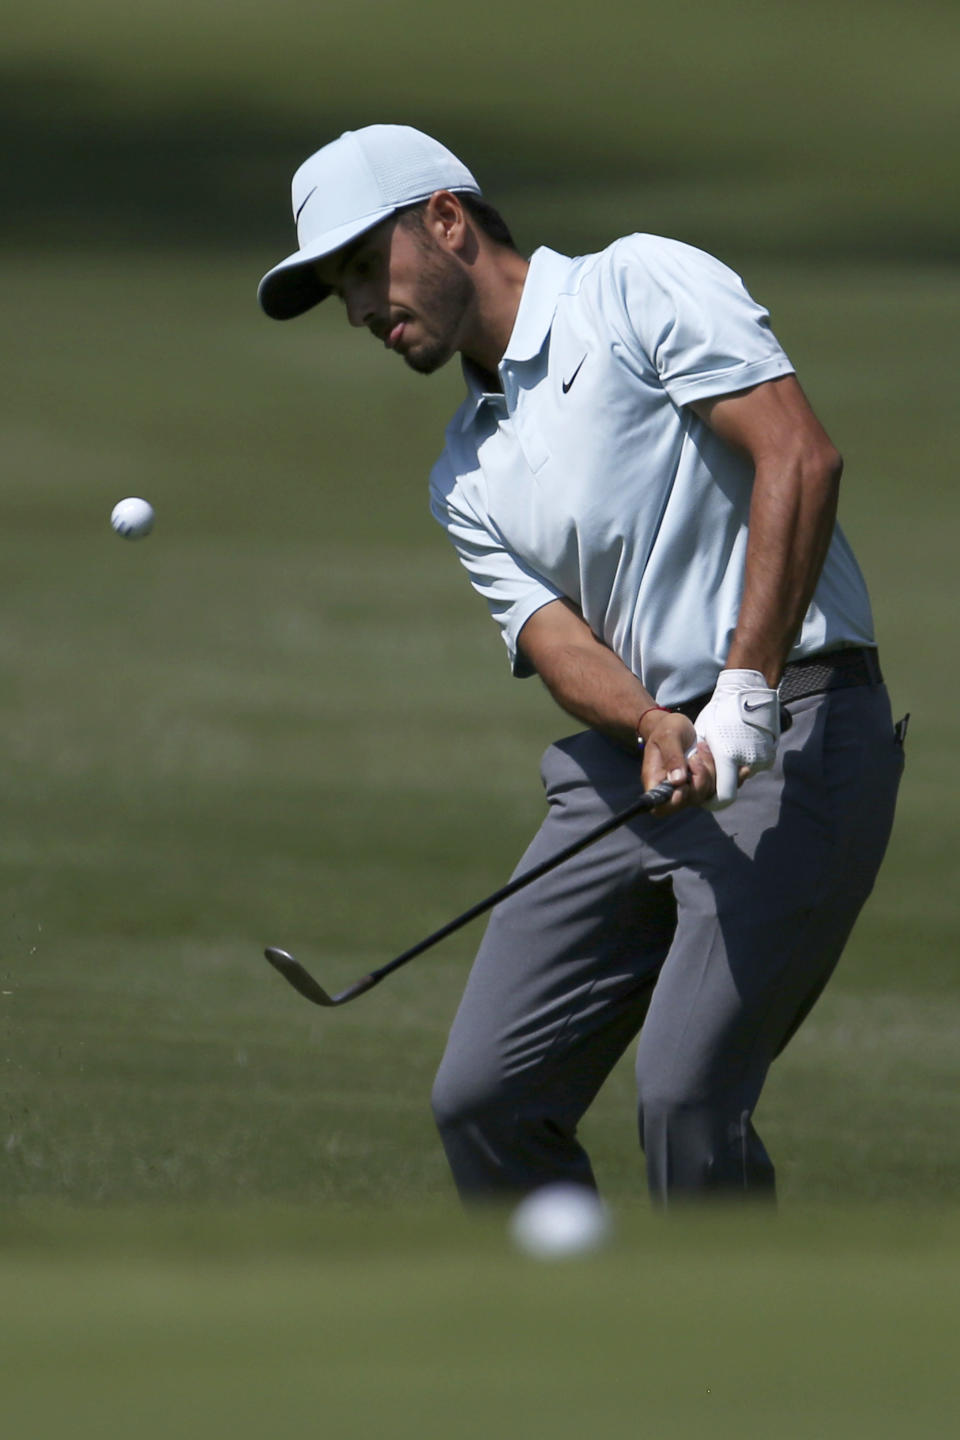 Mexican golfer Abraham Ancer approaches the green on the 2nd hole during the first round of the Mexico Championship at the Chapultepec Golf Club in Mexico City, Thursday, March 1, 2018. (AP Photo/Marco Ugarte)